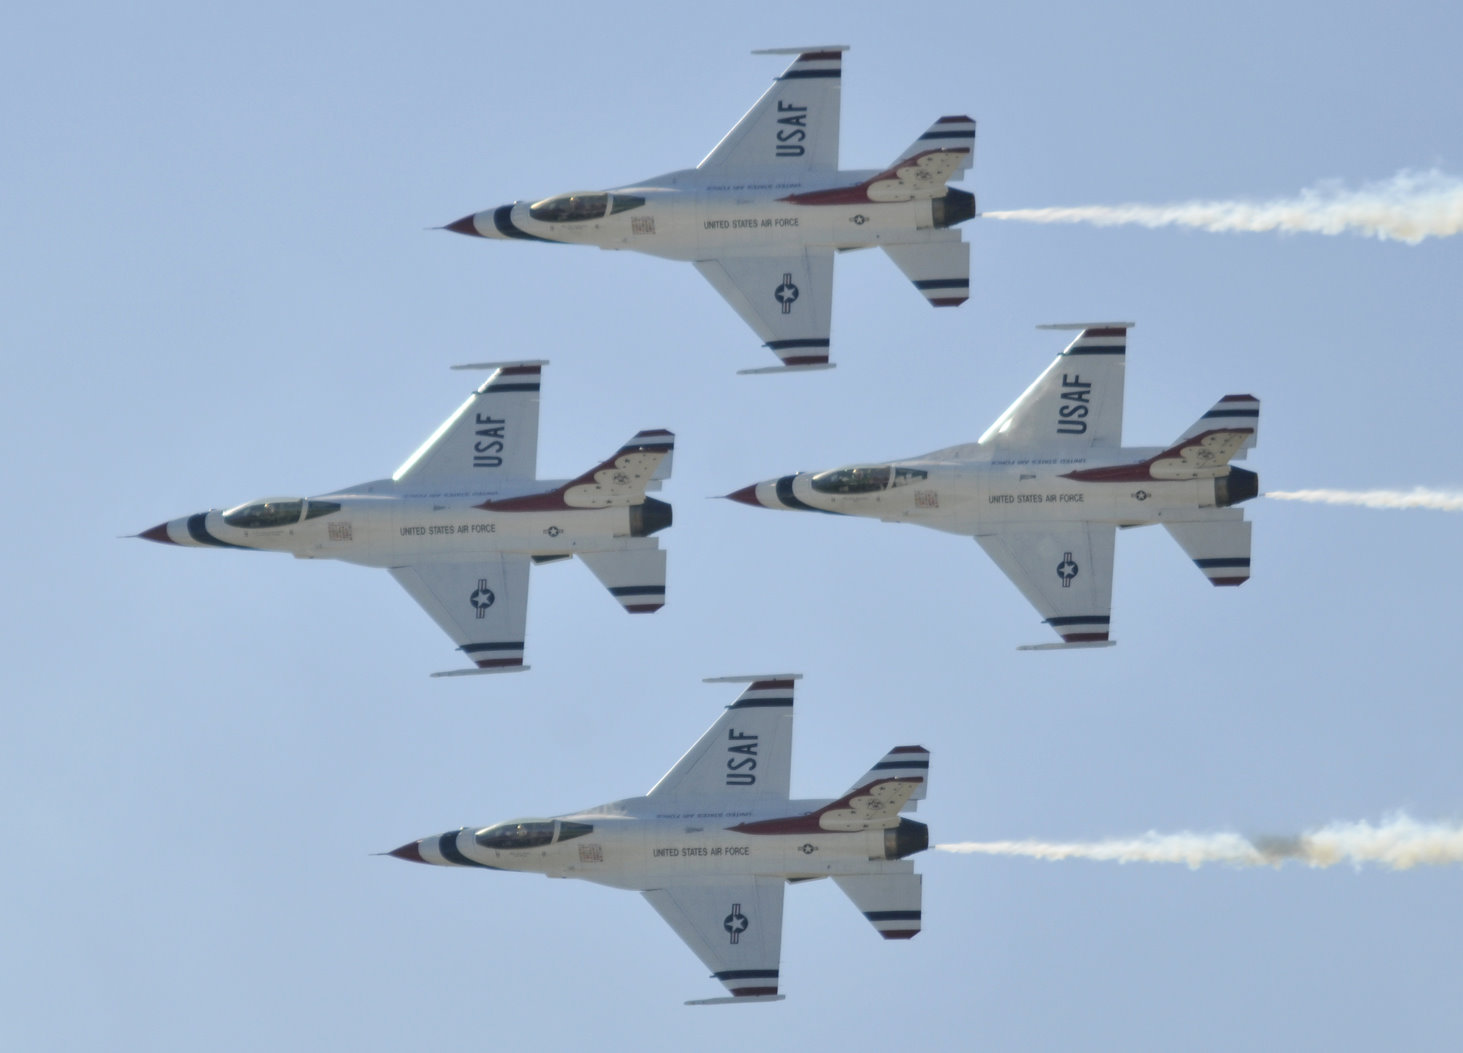 The U.S. Air Force air demonstration team, the Thunderbirds, perform precision aerial maneuvers Nov. 6, 2010, during AirFest 2010 at Lackland Air Force Base, Texas.  (U.S. Air Force photo/Jim Pritchett)